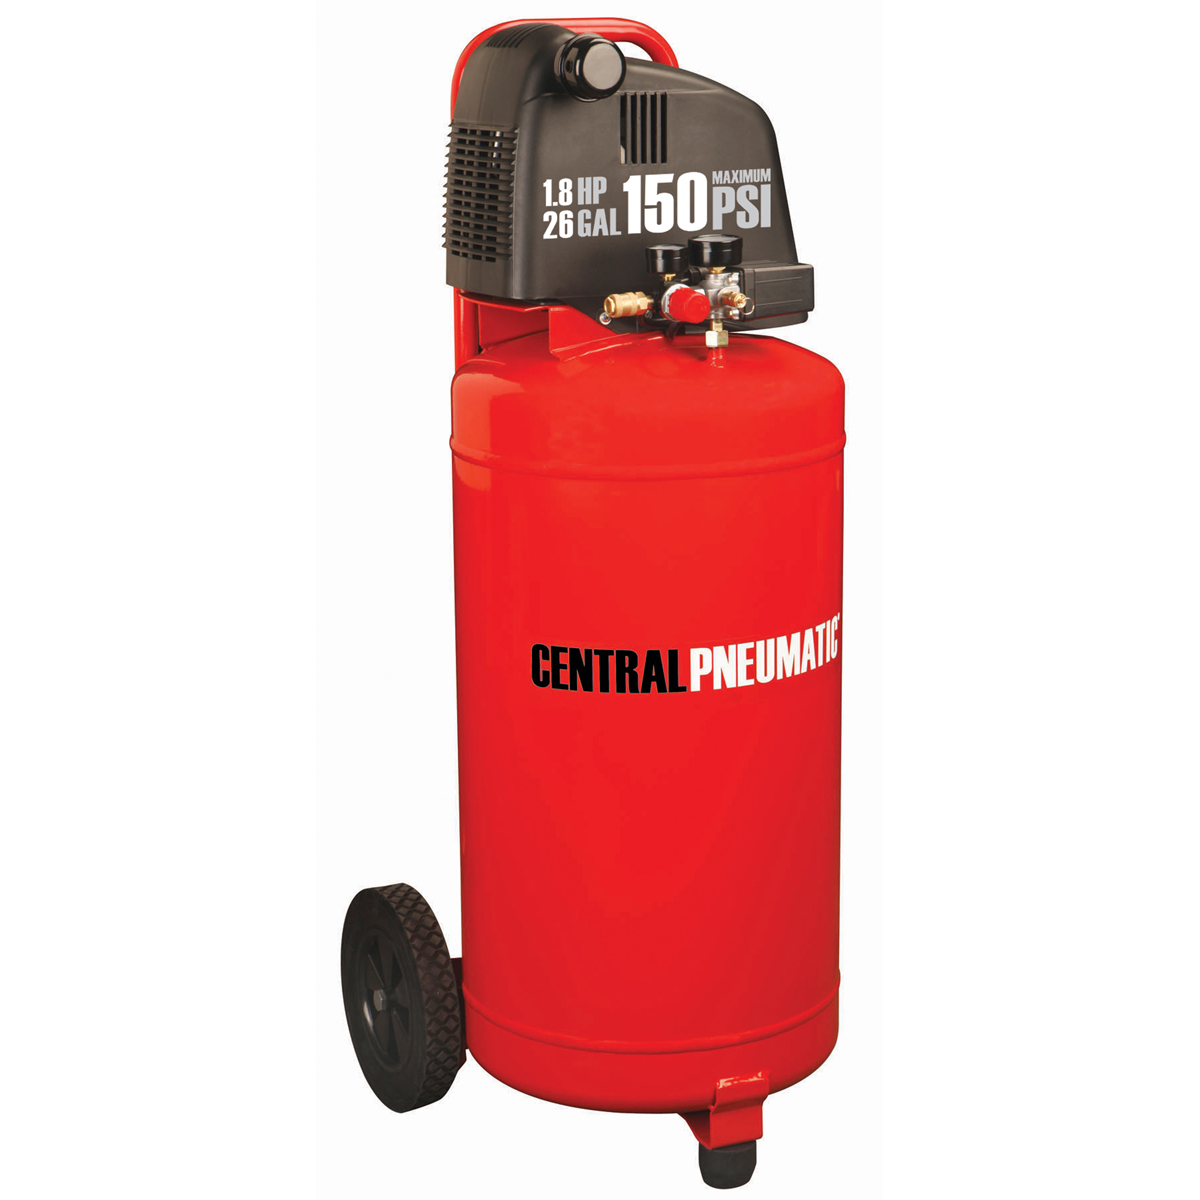 26 Gal 1 8 Hp 150 Psi Oilless Air Compressor